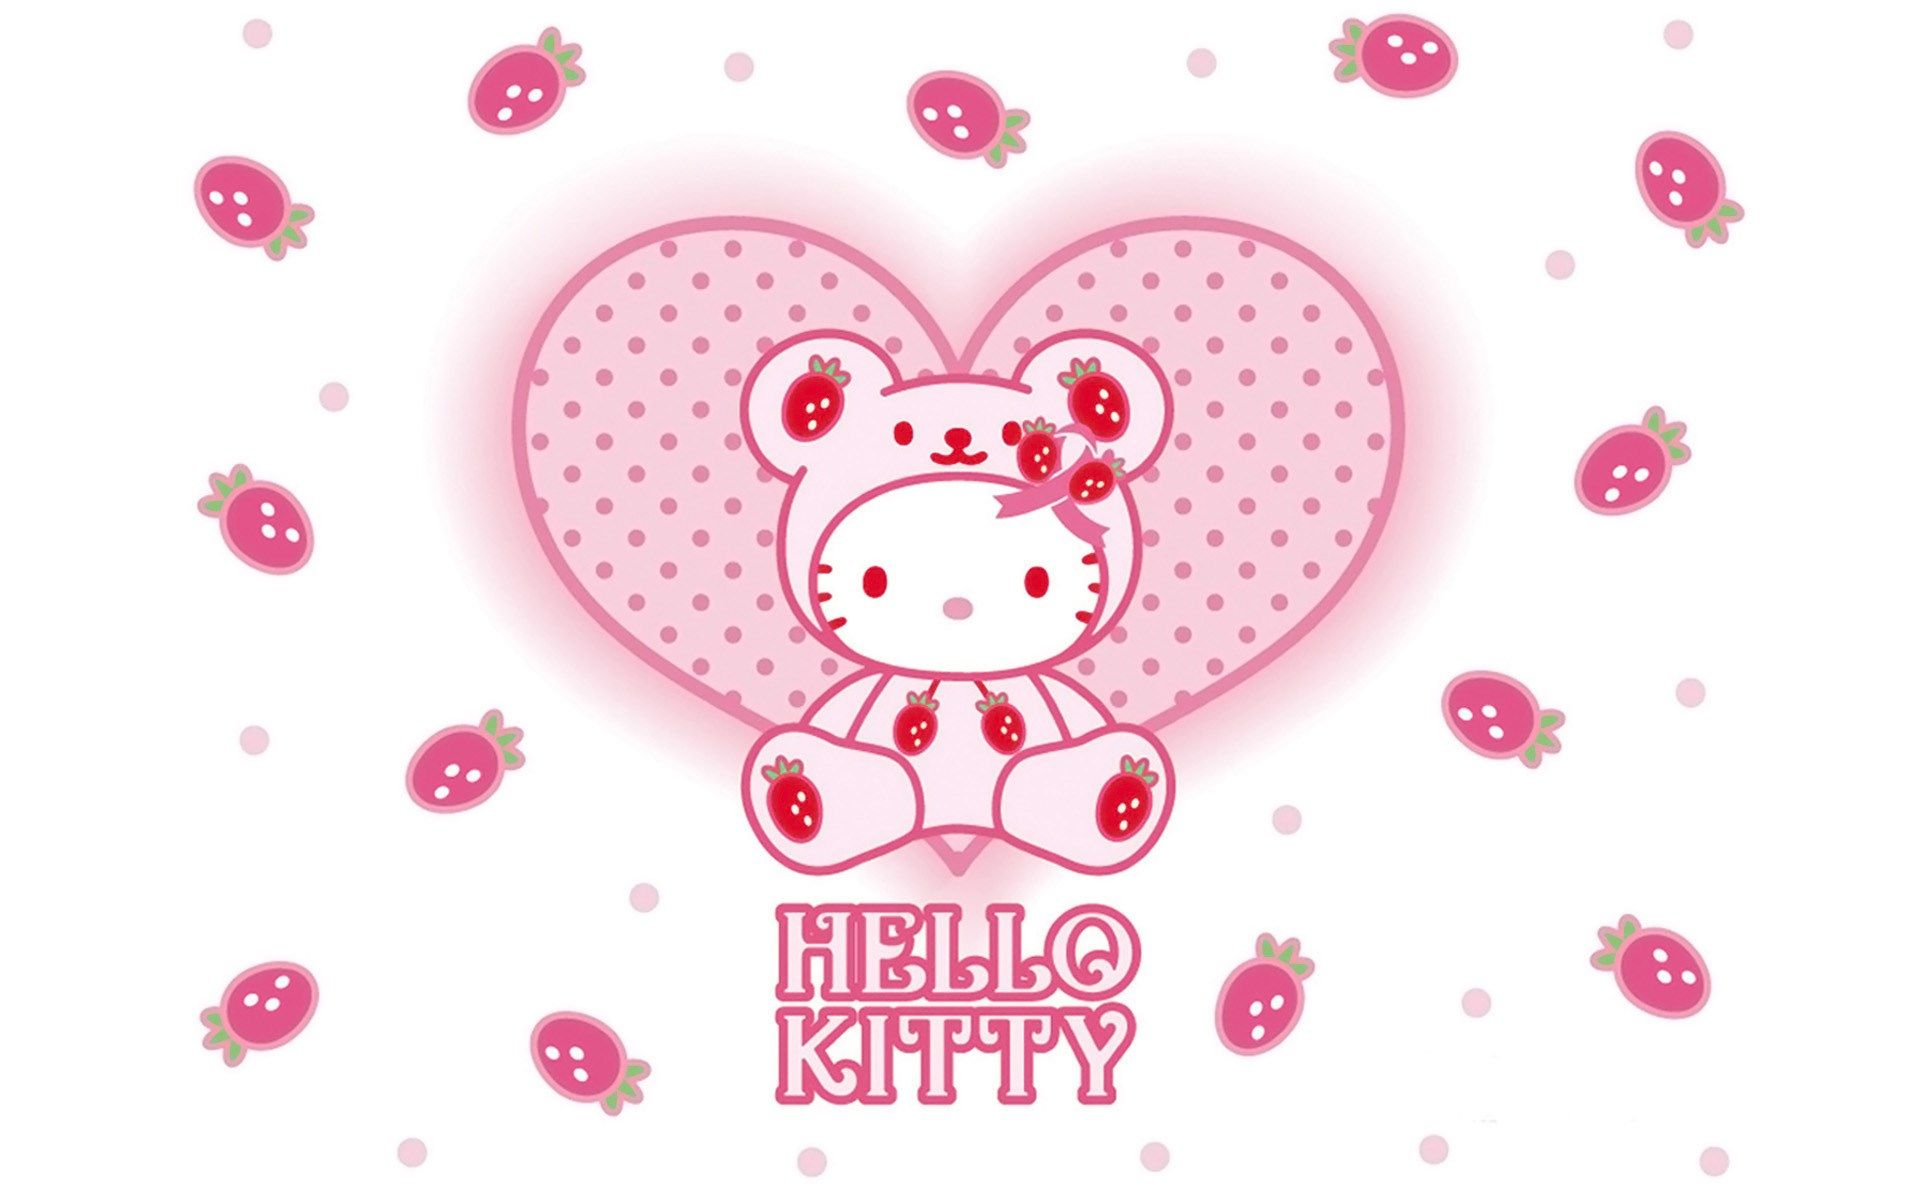 Beautiful Wallpaper Hello Kitty 1080p - 5a04fbb26acf992c2b31ad7d2a2d2054  Pictures_268484.jpg